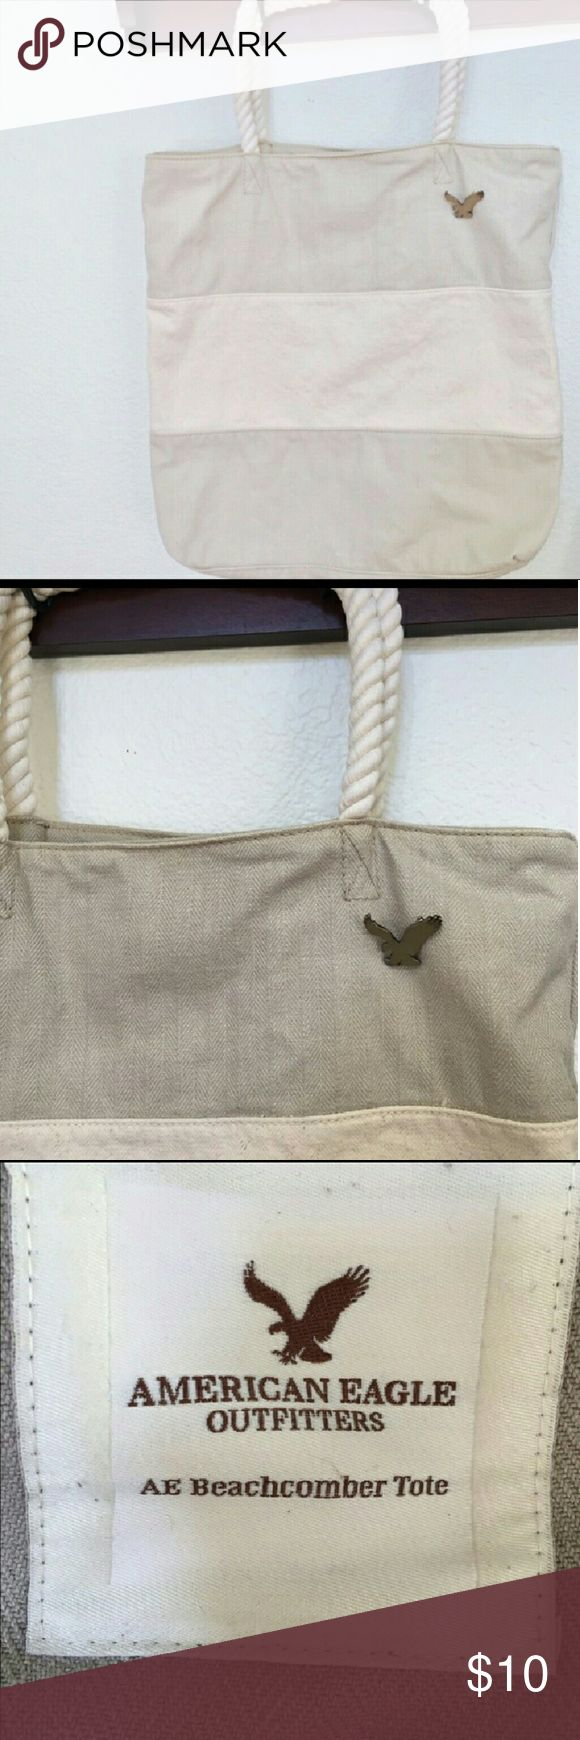 """AEO Tote Large sized tote, """"Beachcomber Tote"""" by American Eagle Outfitters. Excellent quality and condition. Very gently used, looks new. American Eagle Outfitters Bags Totes"""